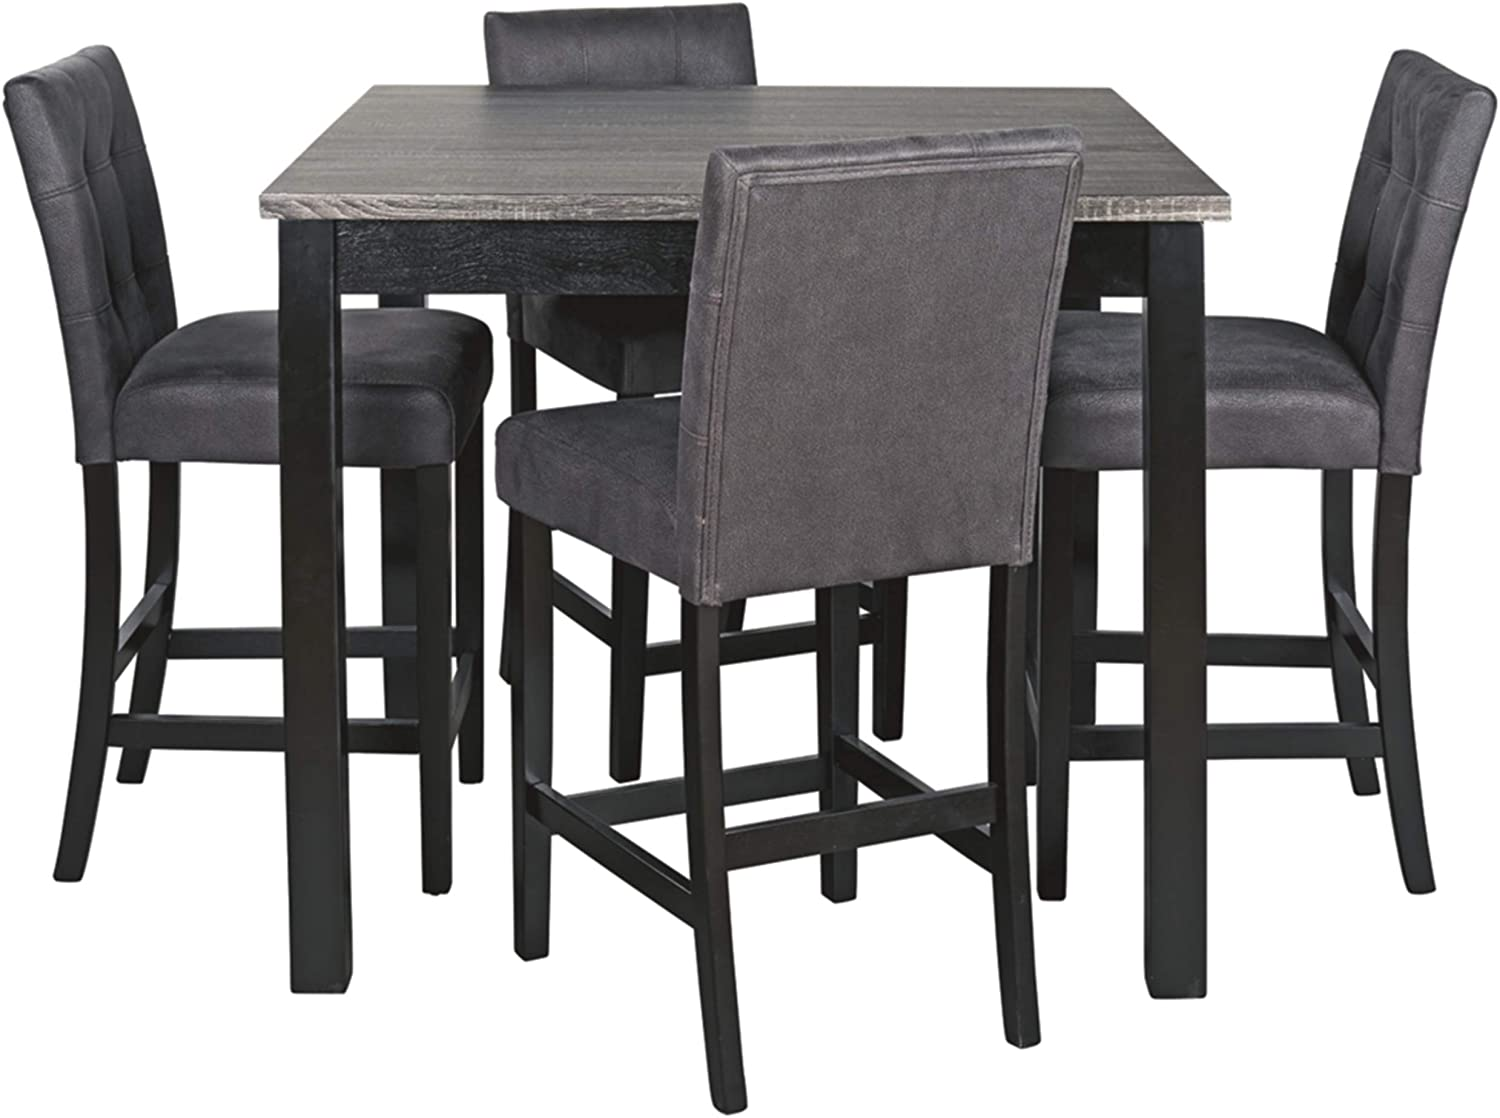 Signature Design by Ashley Garvine Counter Height Dining Room Table and Bar  Stools Set of 9, Two tone